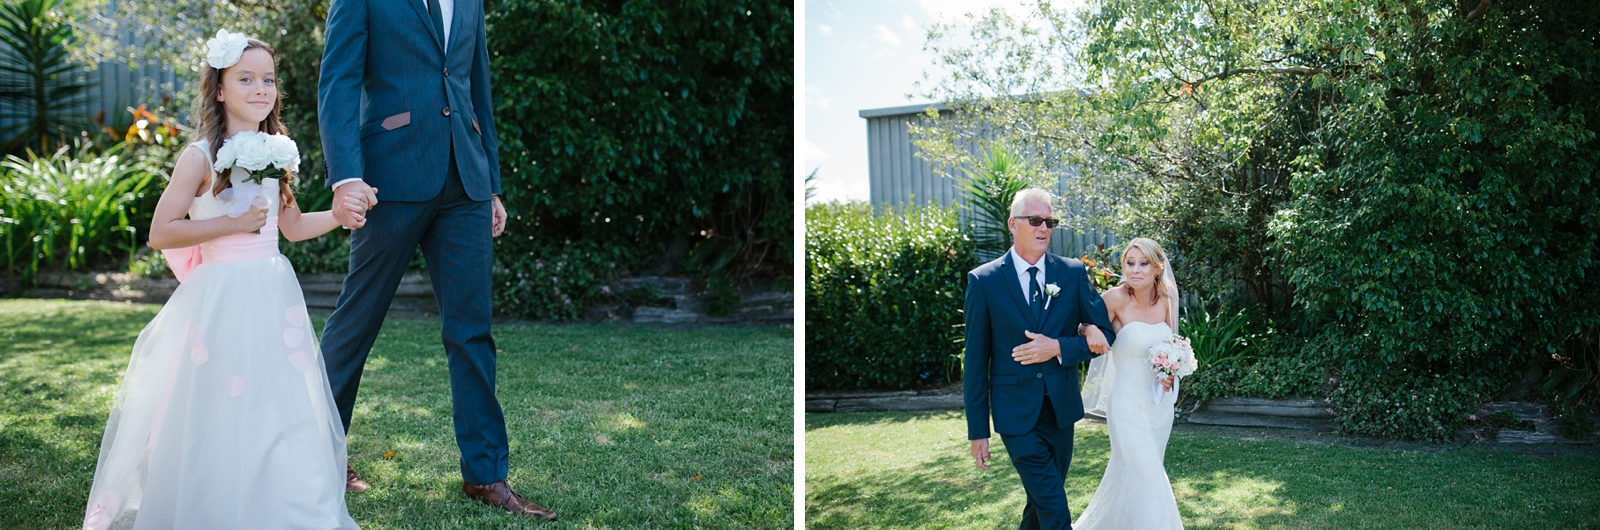 ConnorLaura_Auckland Wedding Photographer_Patty Lagera_0049.jpg